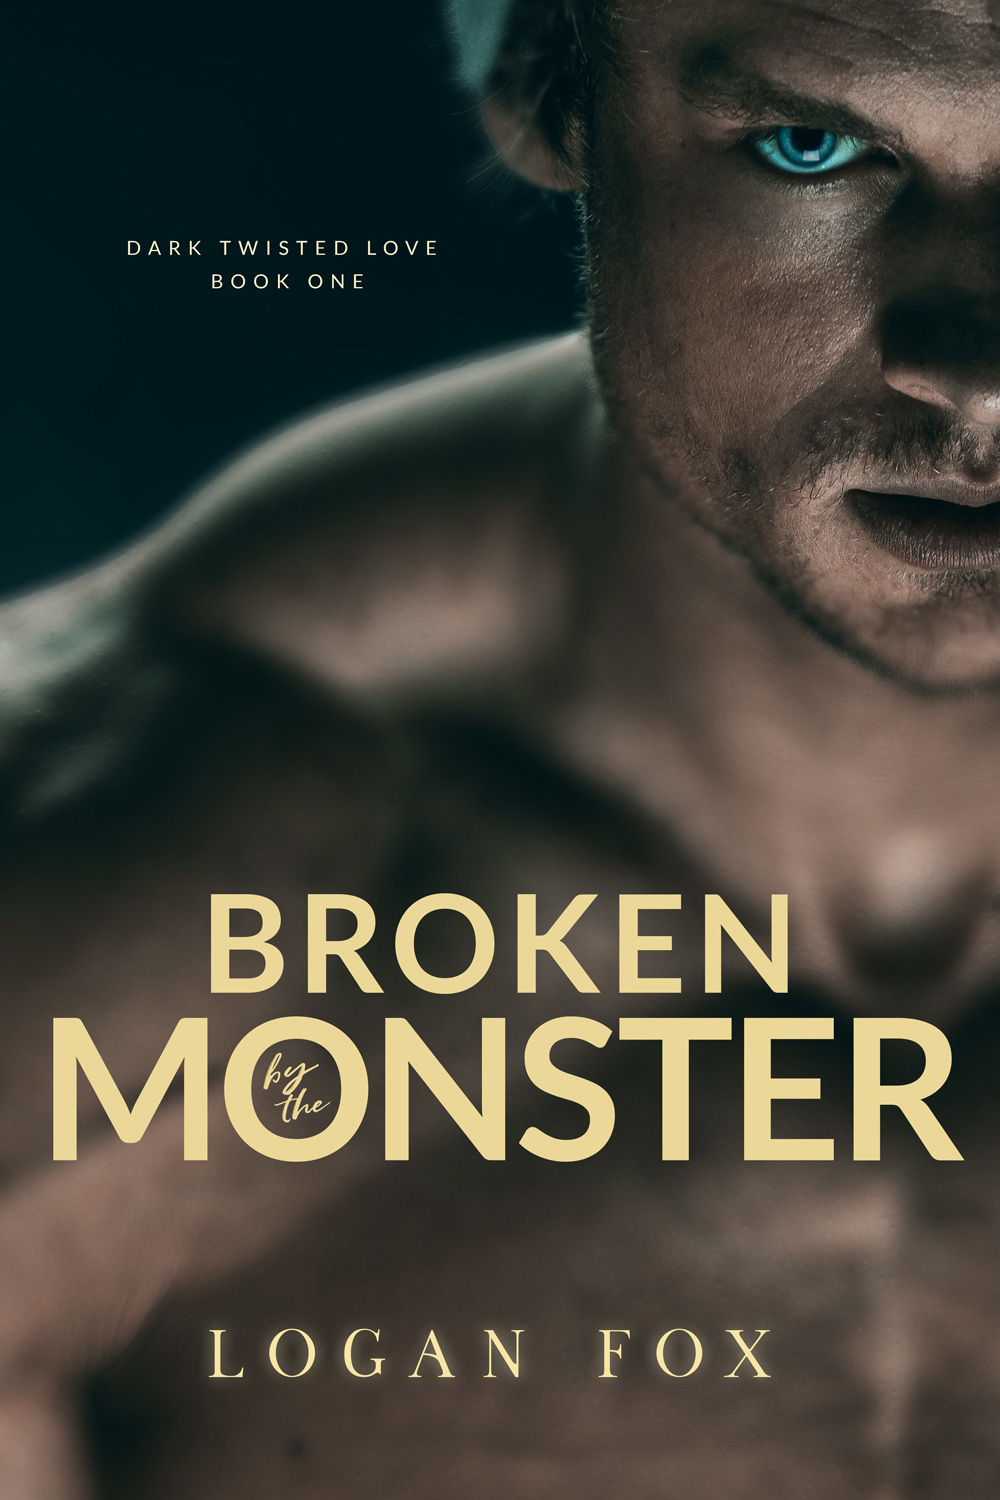 Broken by the Monster (Dark Twisted Love #1)